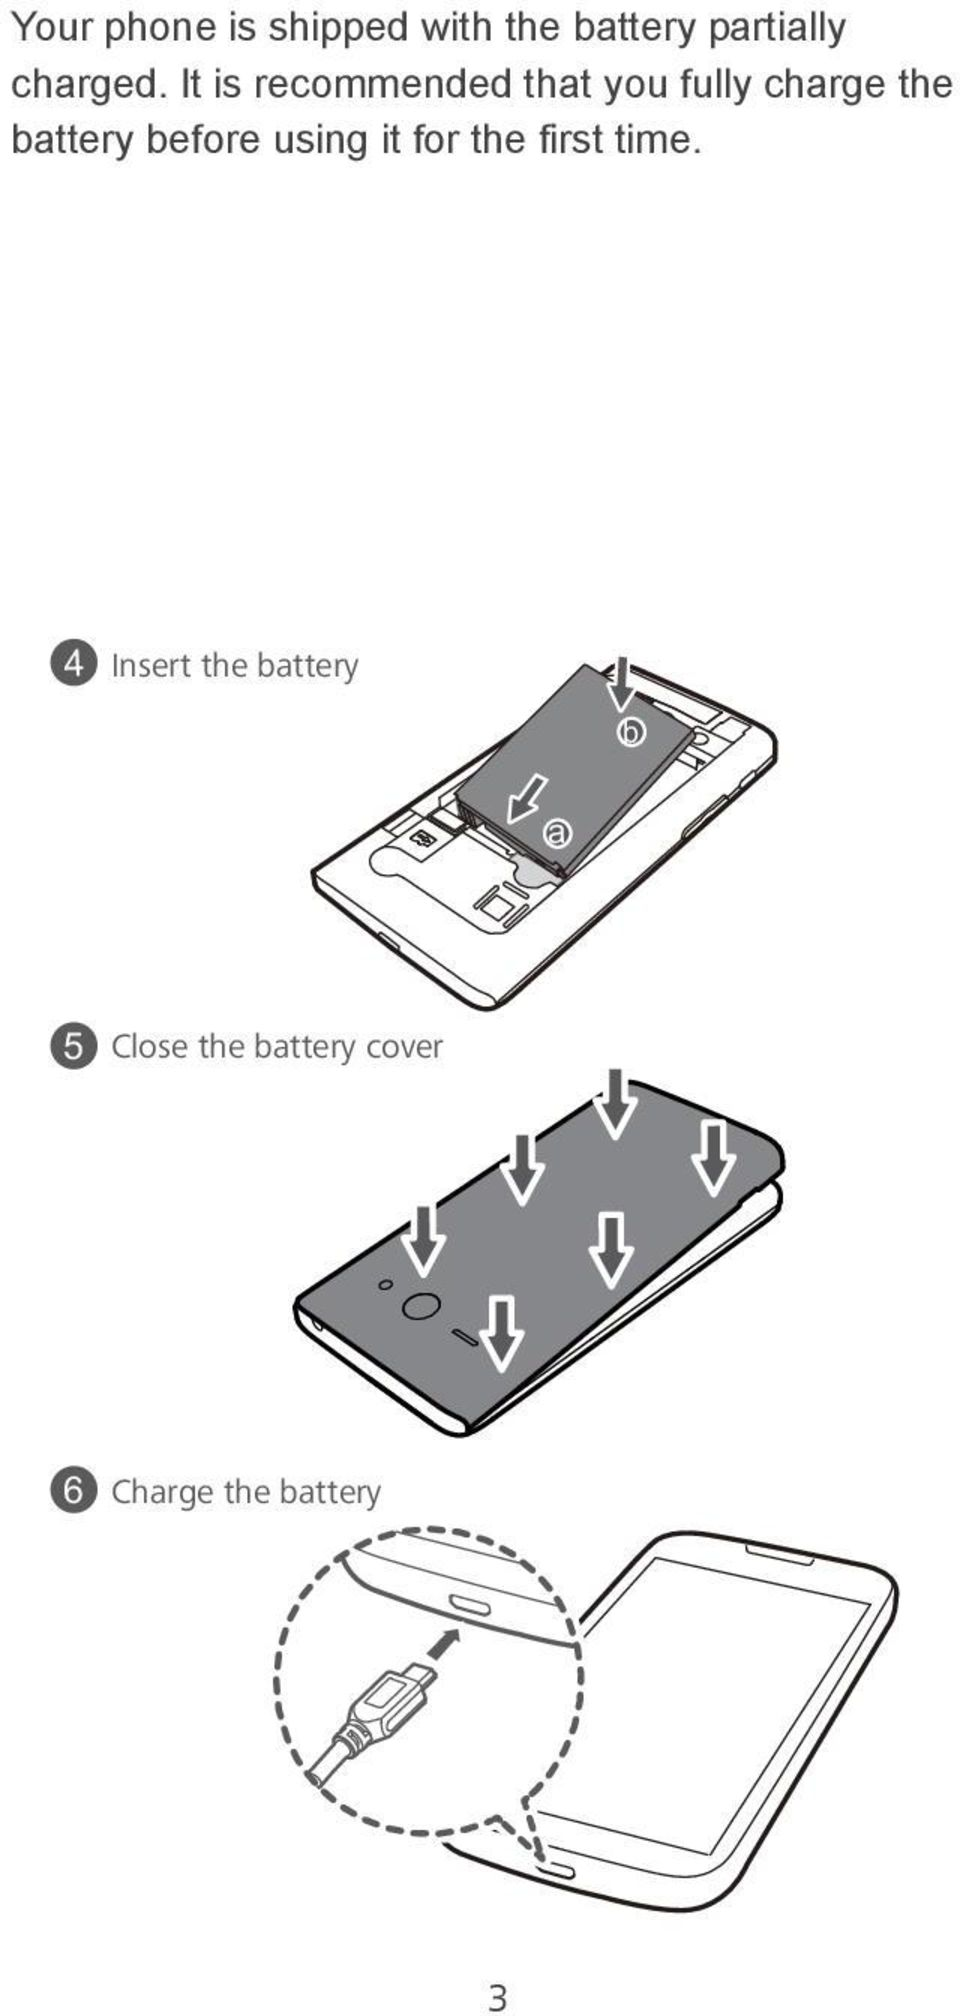 It is recommended that you fully charge the battery